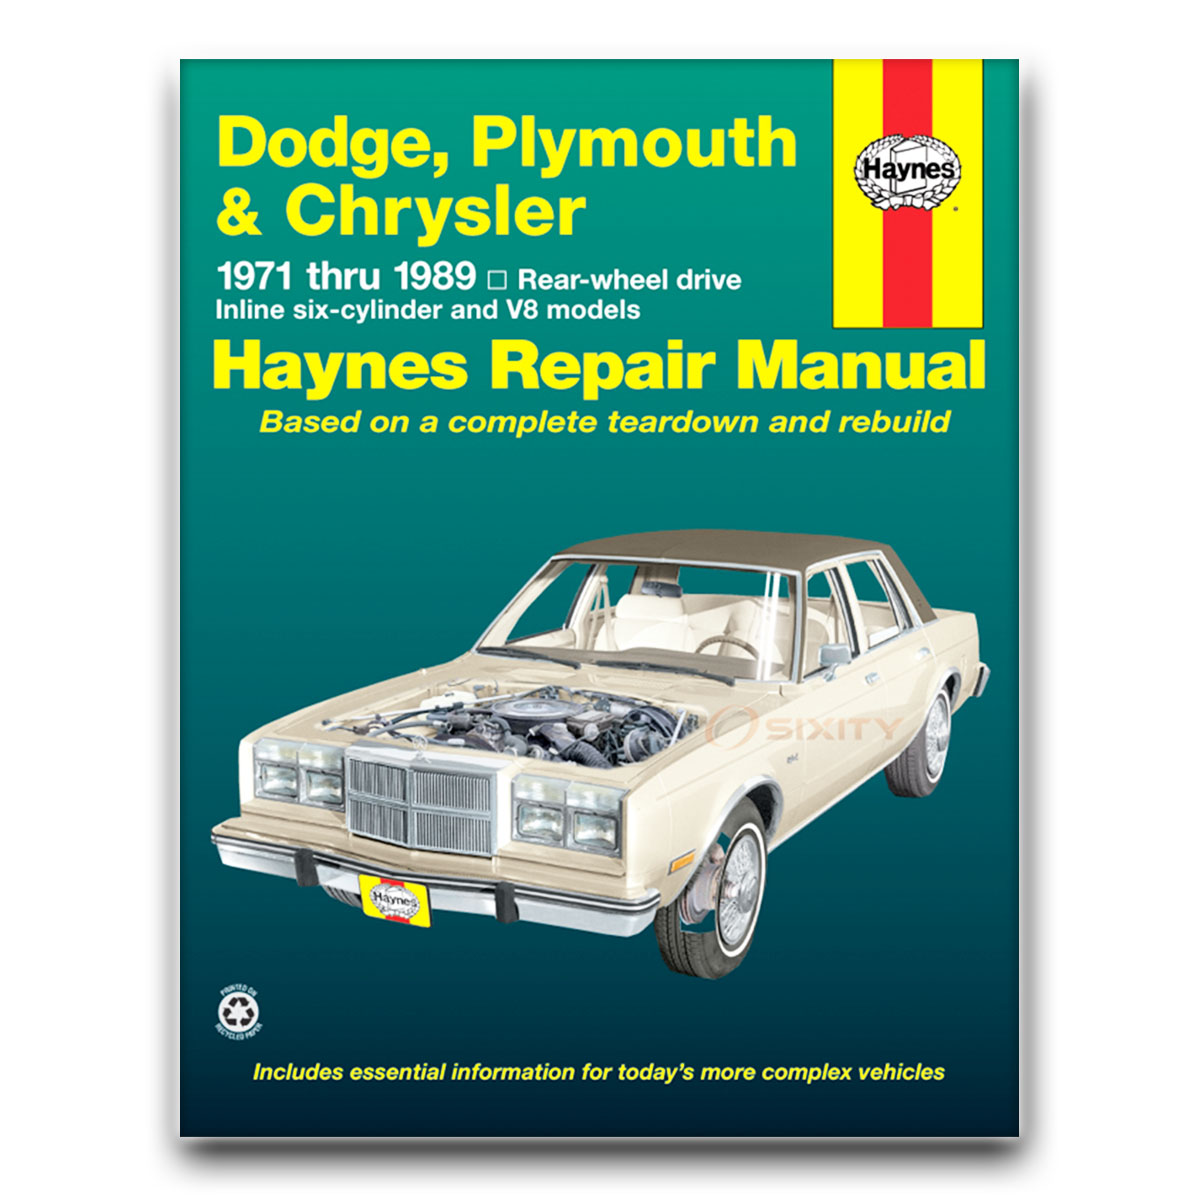 Chrysler Town & Country (Car) Haynes Repair Manual Base